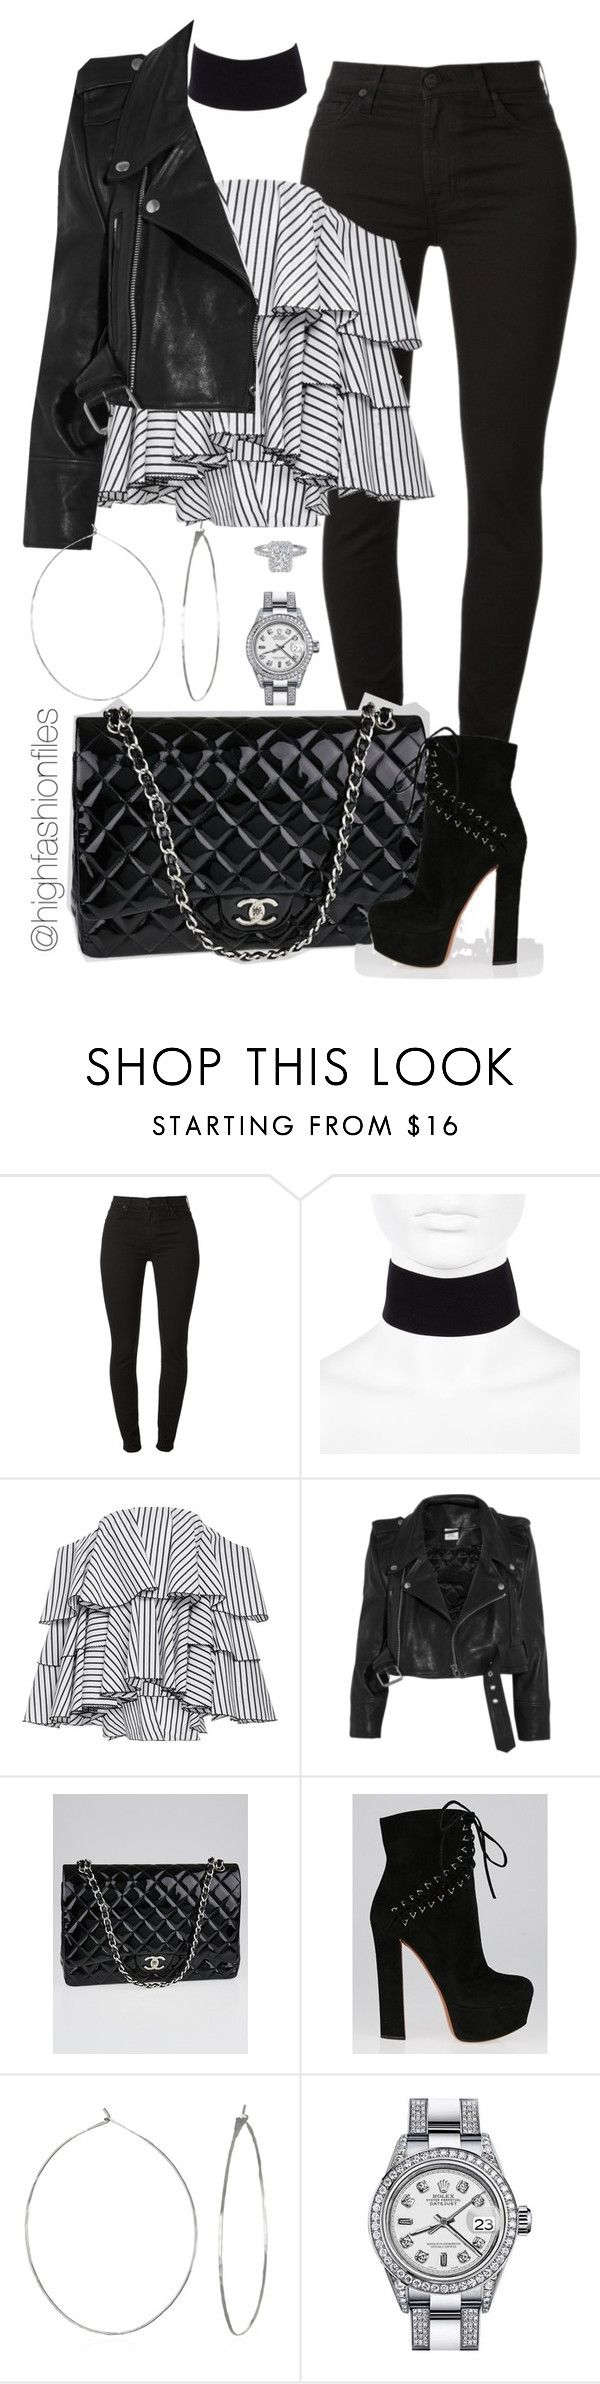 """""""Untitled #2572"""" by highfashionfiles ❤ liked on Polyvore featuring River Island, Caroline Constas, Vetements, Chanel, Alaïa, Phyllis + Rosie and Rolex"""